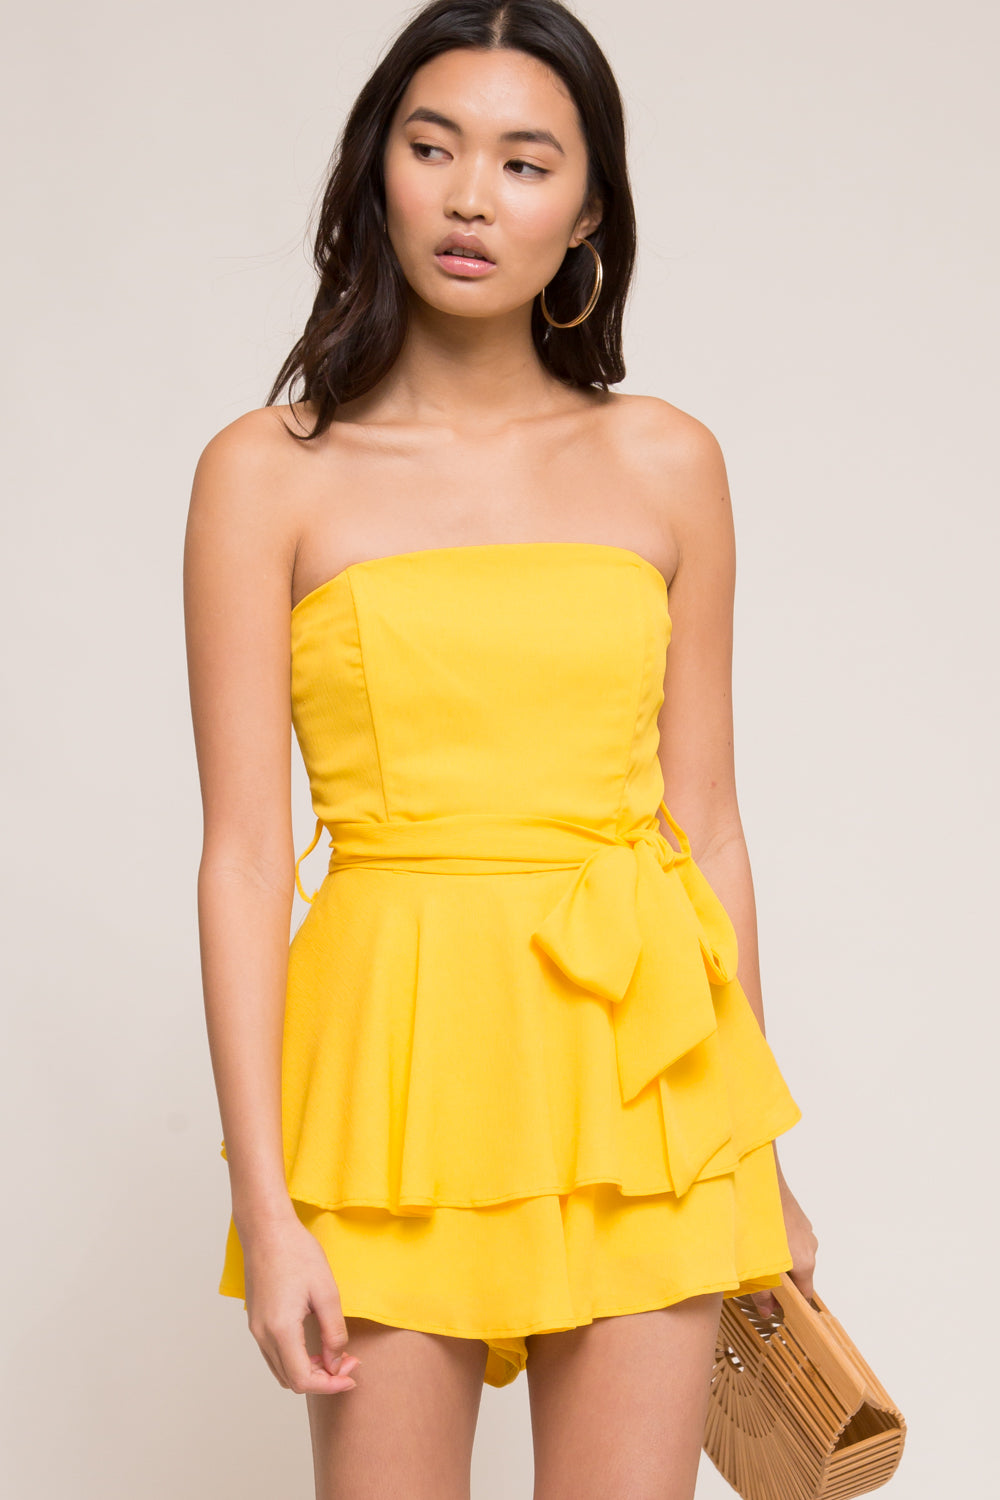 Come With Me Strapless Chiffon Romper - Geegeebae